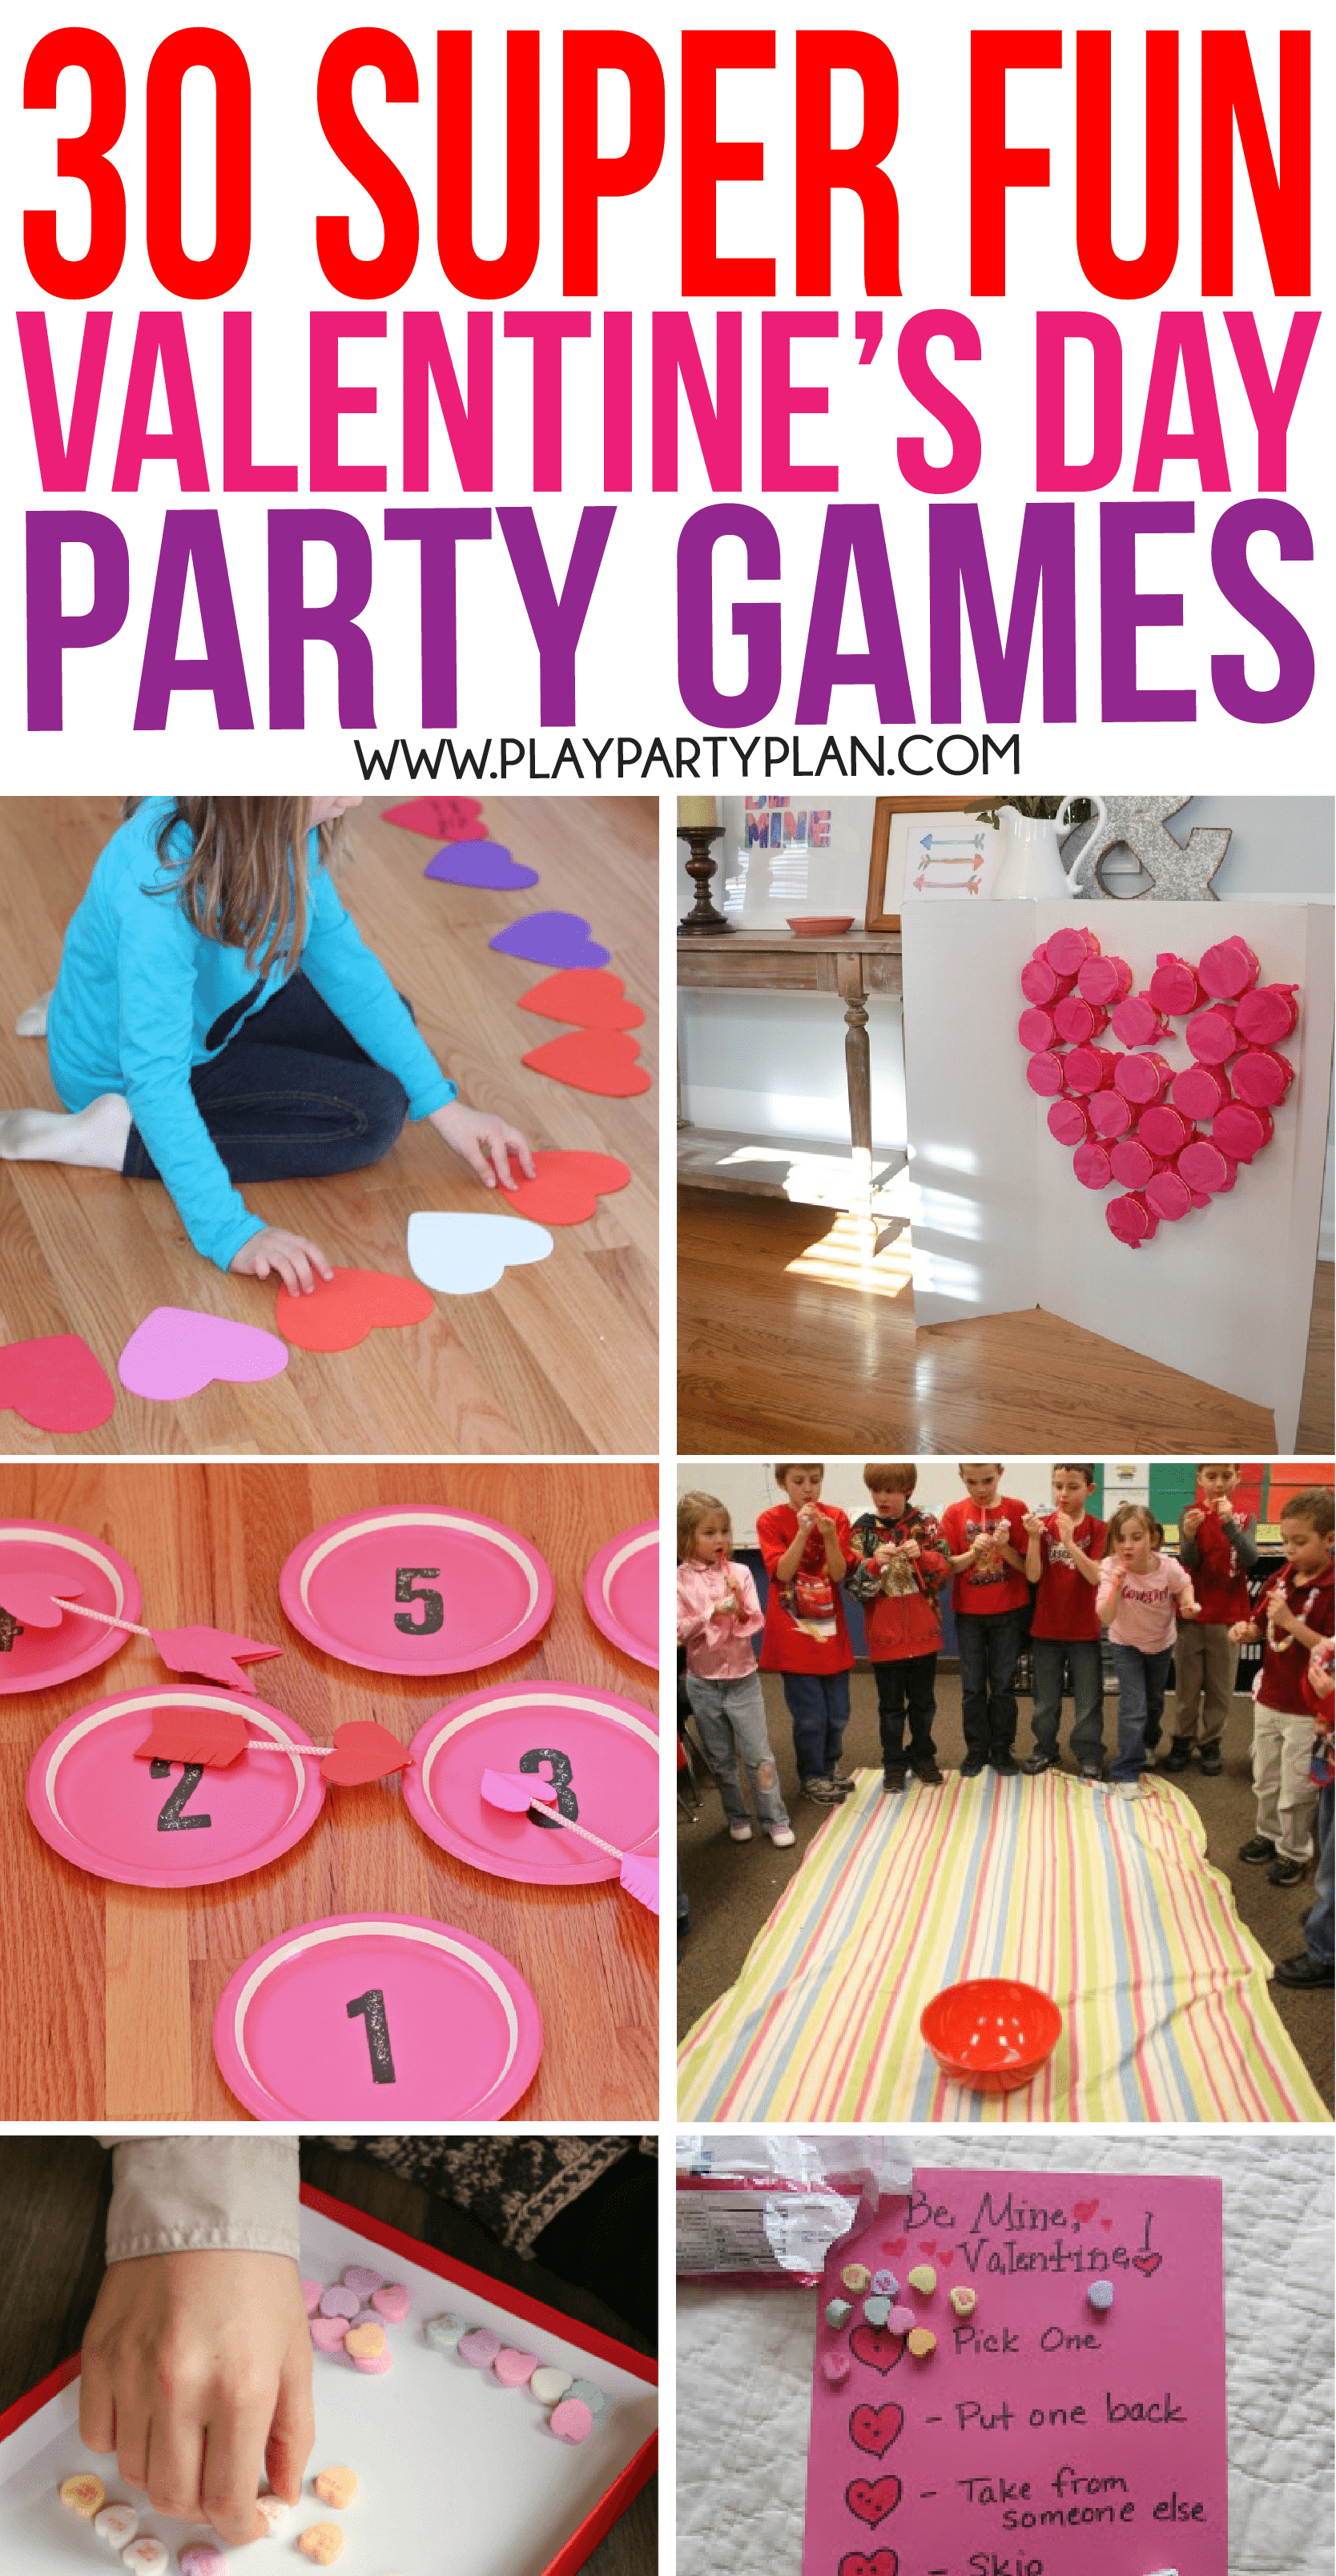 30 Valentine's Day Games Everyone Will Absolutely Love - Play Party Plan - Free Printable Women's Party Games